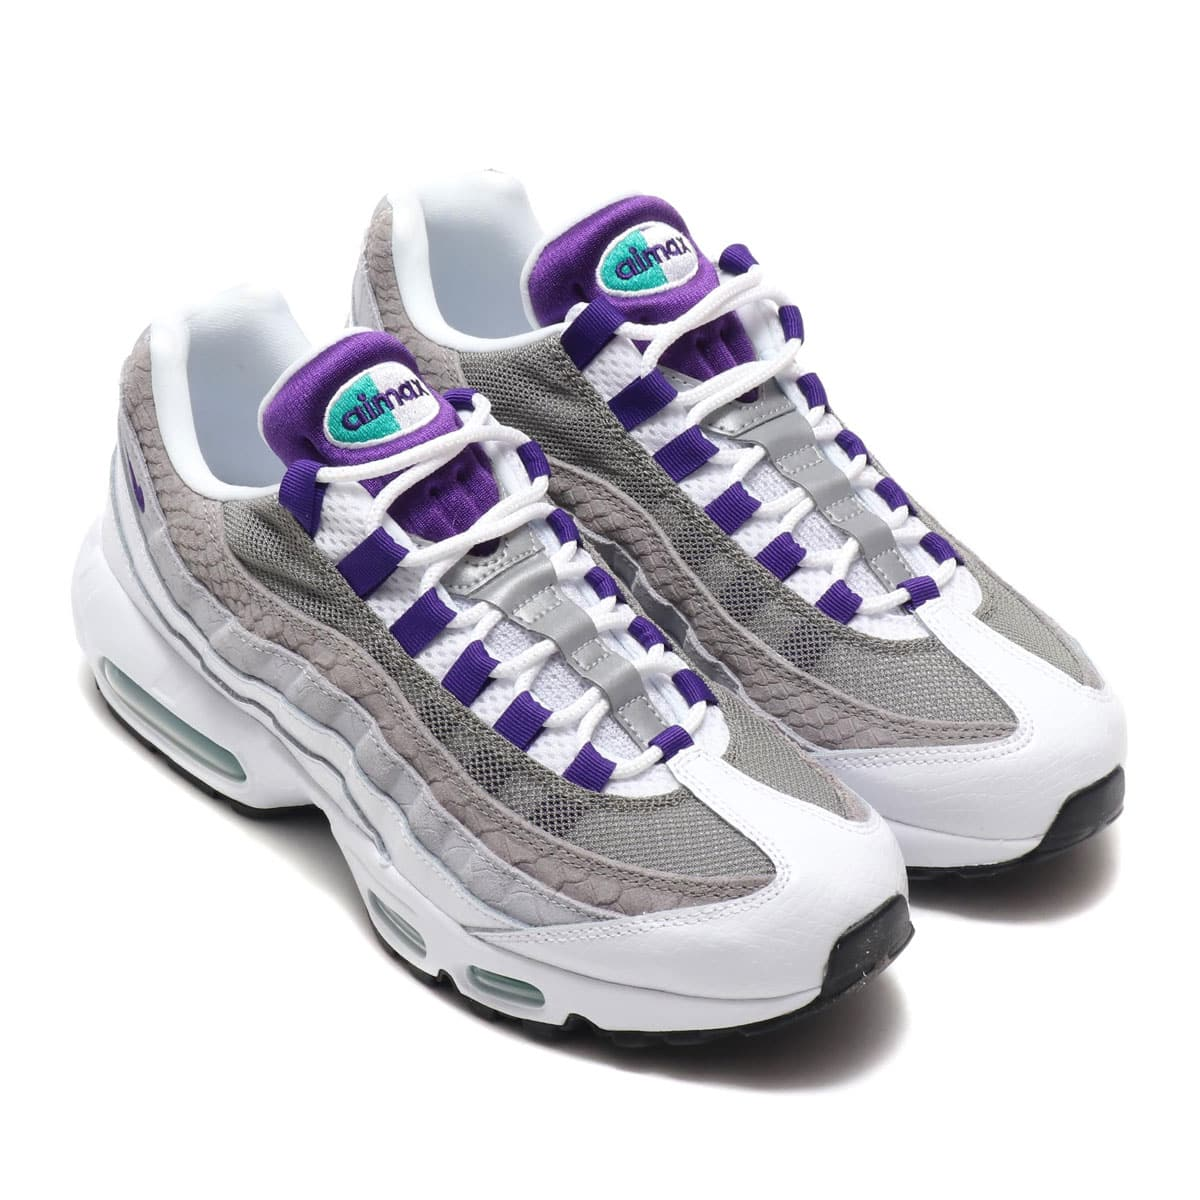 NIKE AIR MAX 95 LV8 WHITE/COURT PURPLE-EMERALD GREEN 19FA-S_photo_large